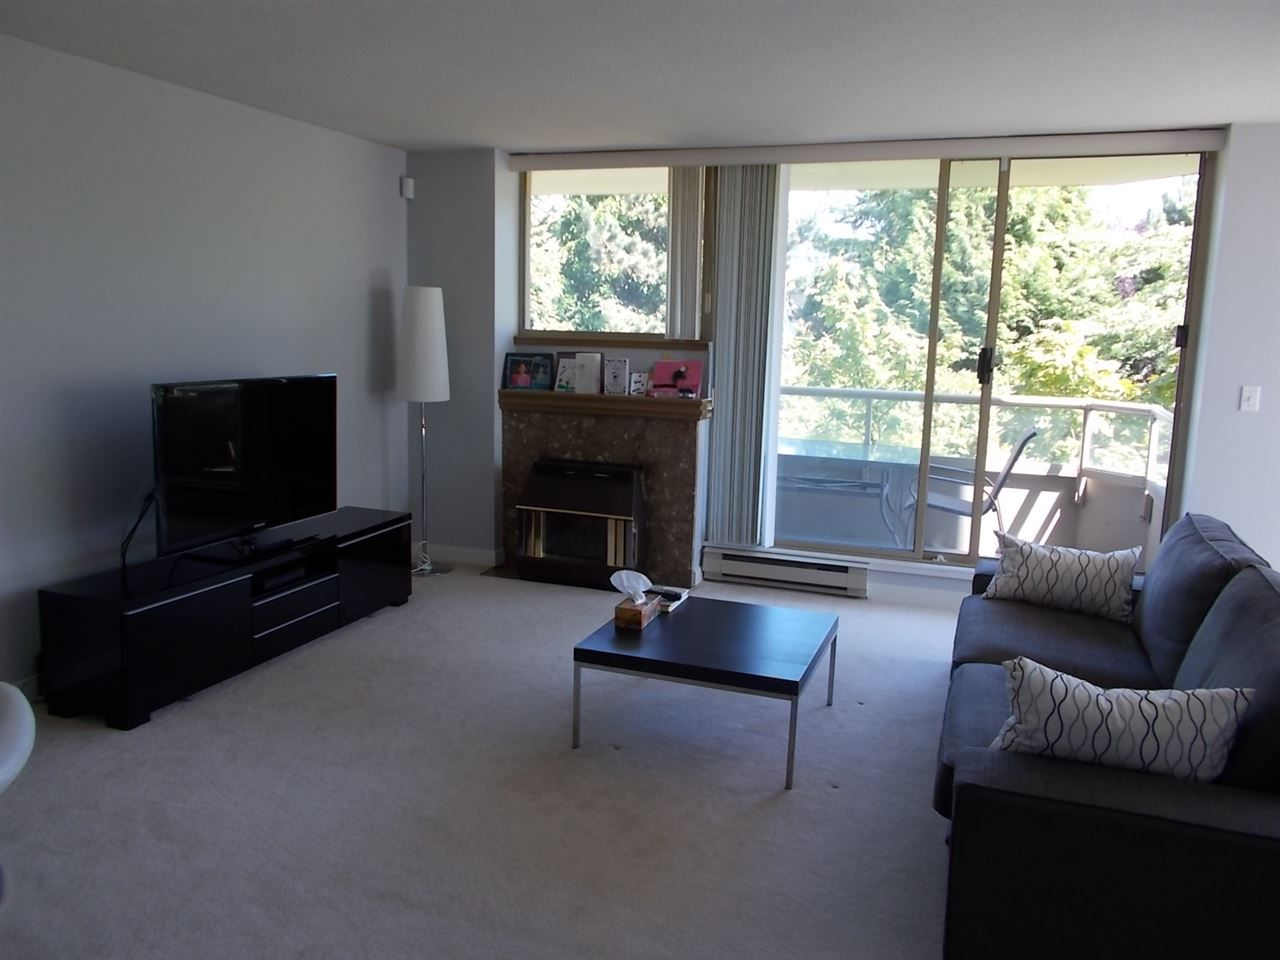 Photo 2: Photos: 301 728 FARROW STREET in Coquitlam: Coquitlam West Condo for sale : MLS®# R2005840